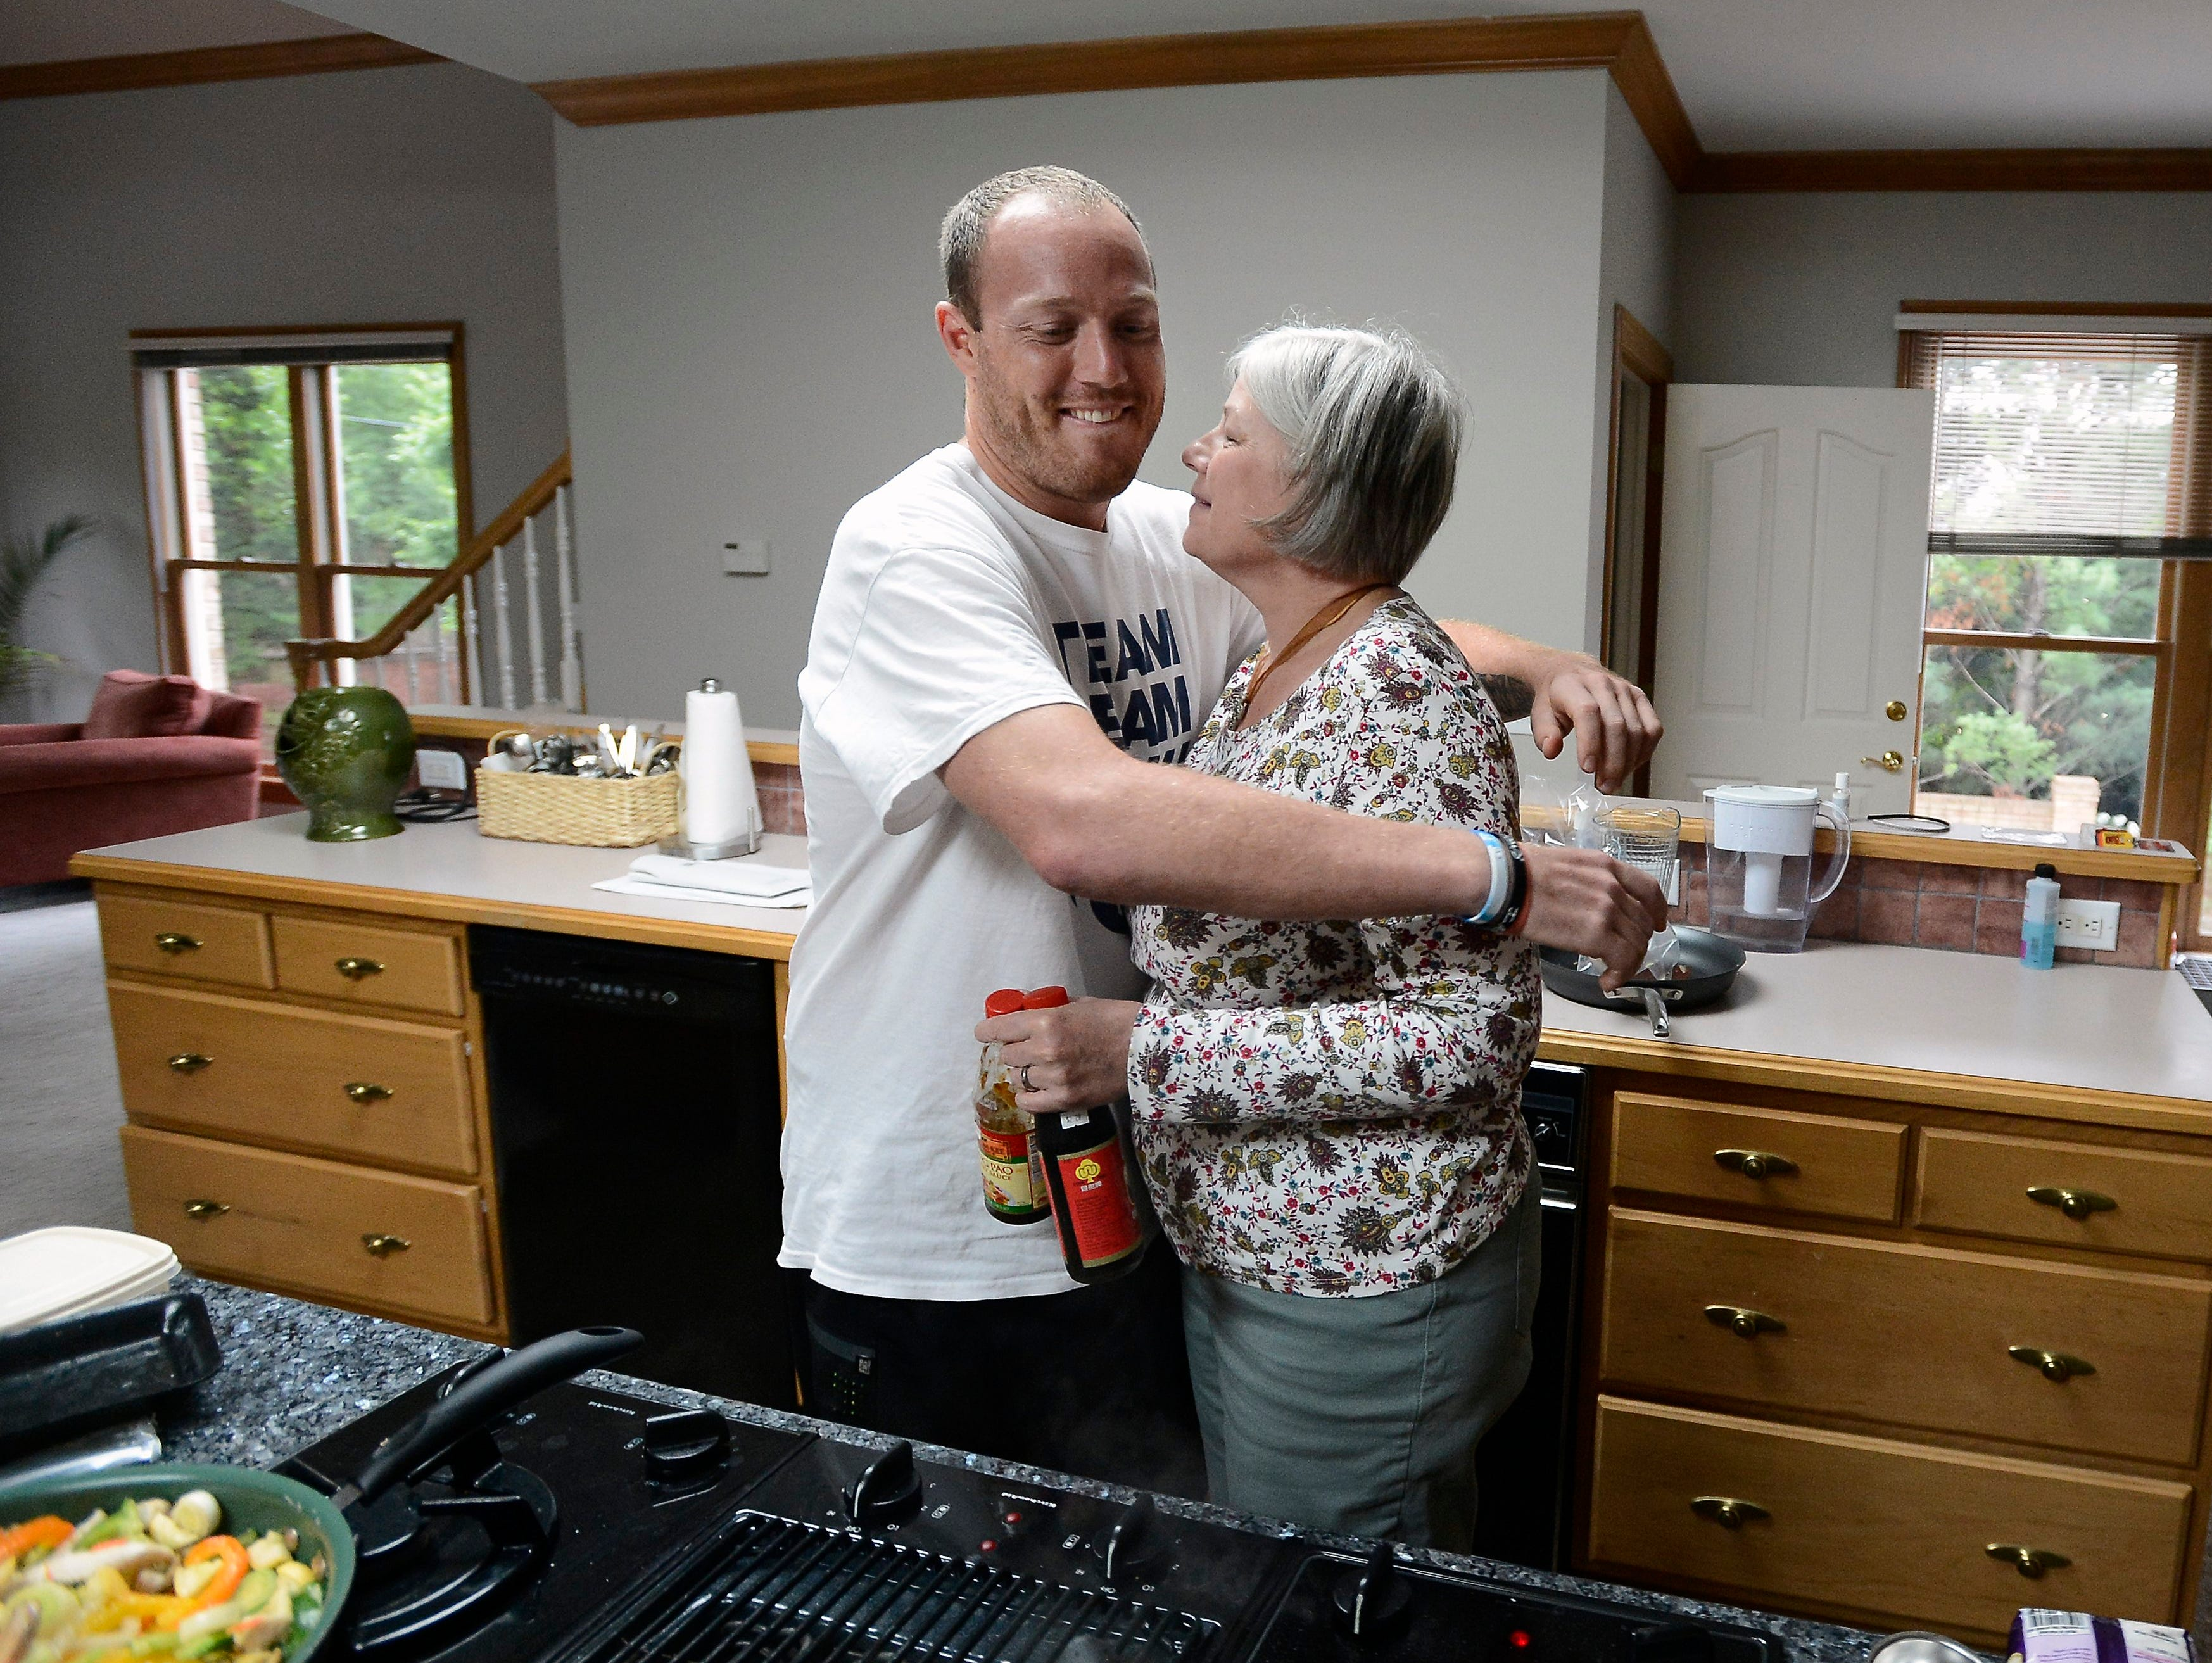 Tim Shaw gives his mom, Sharon, a hug while she cooks dinner on Tuesday, June 2, 2015, in Nashville Tenn.